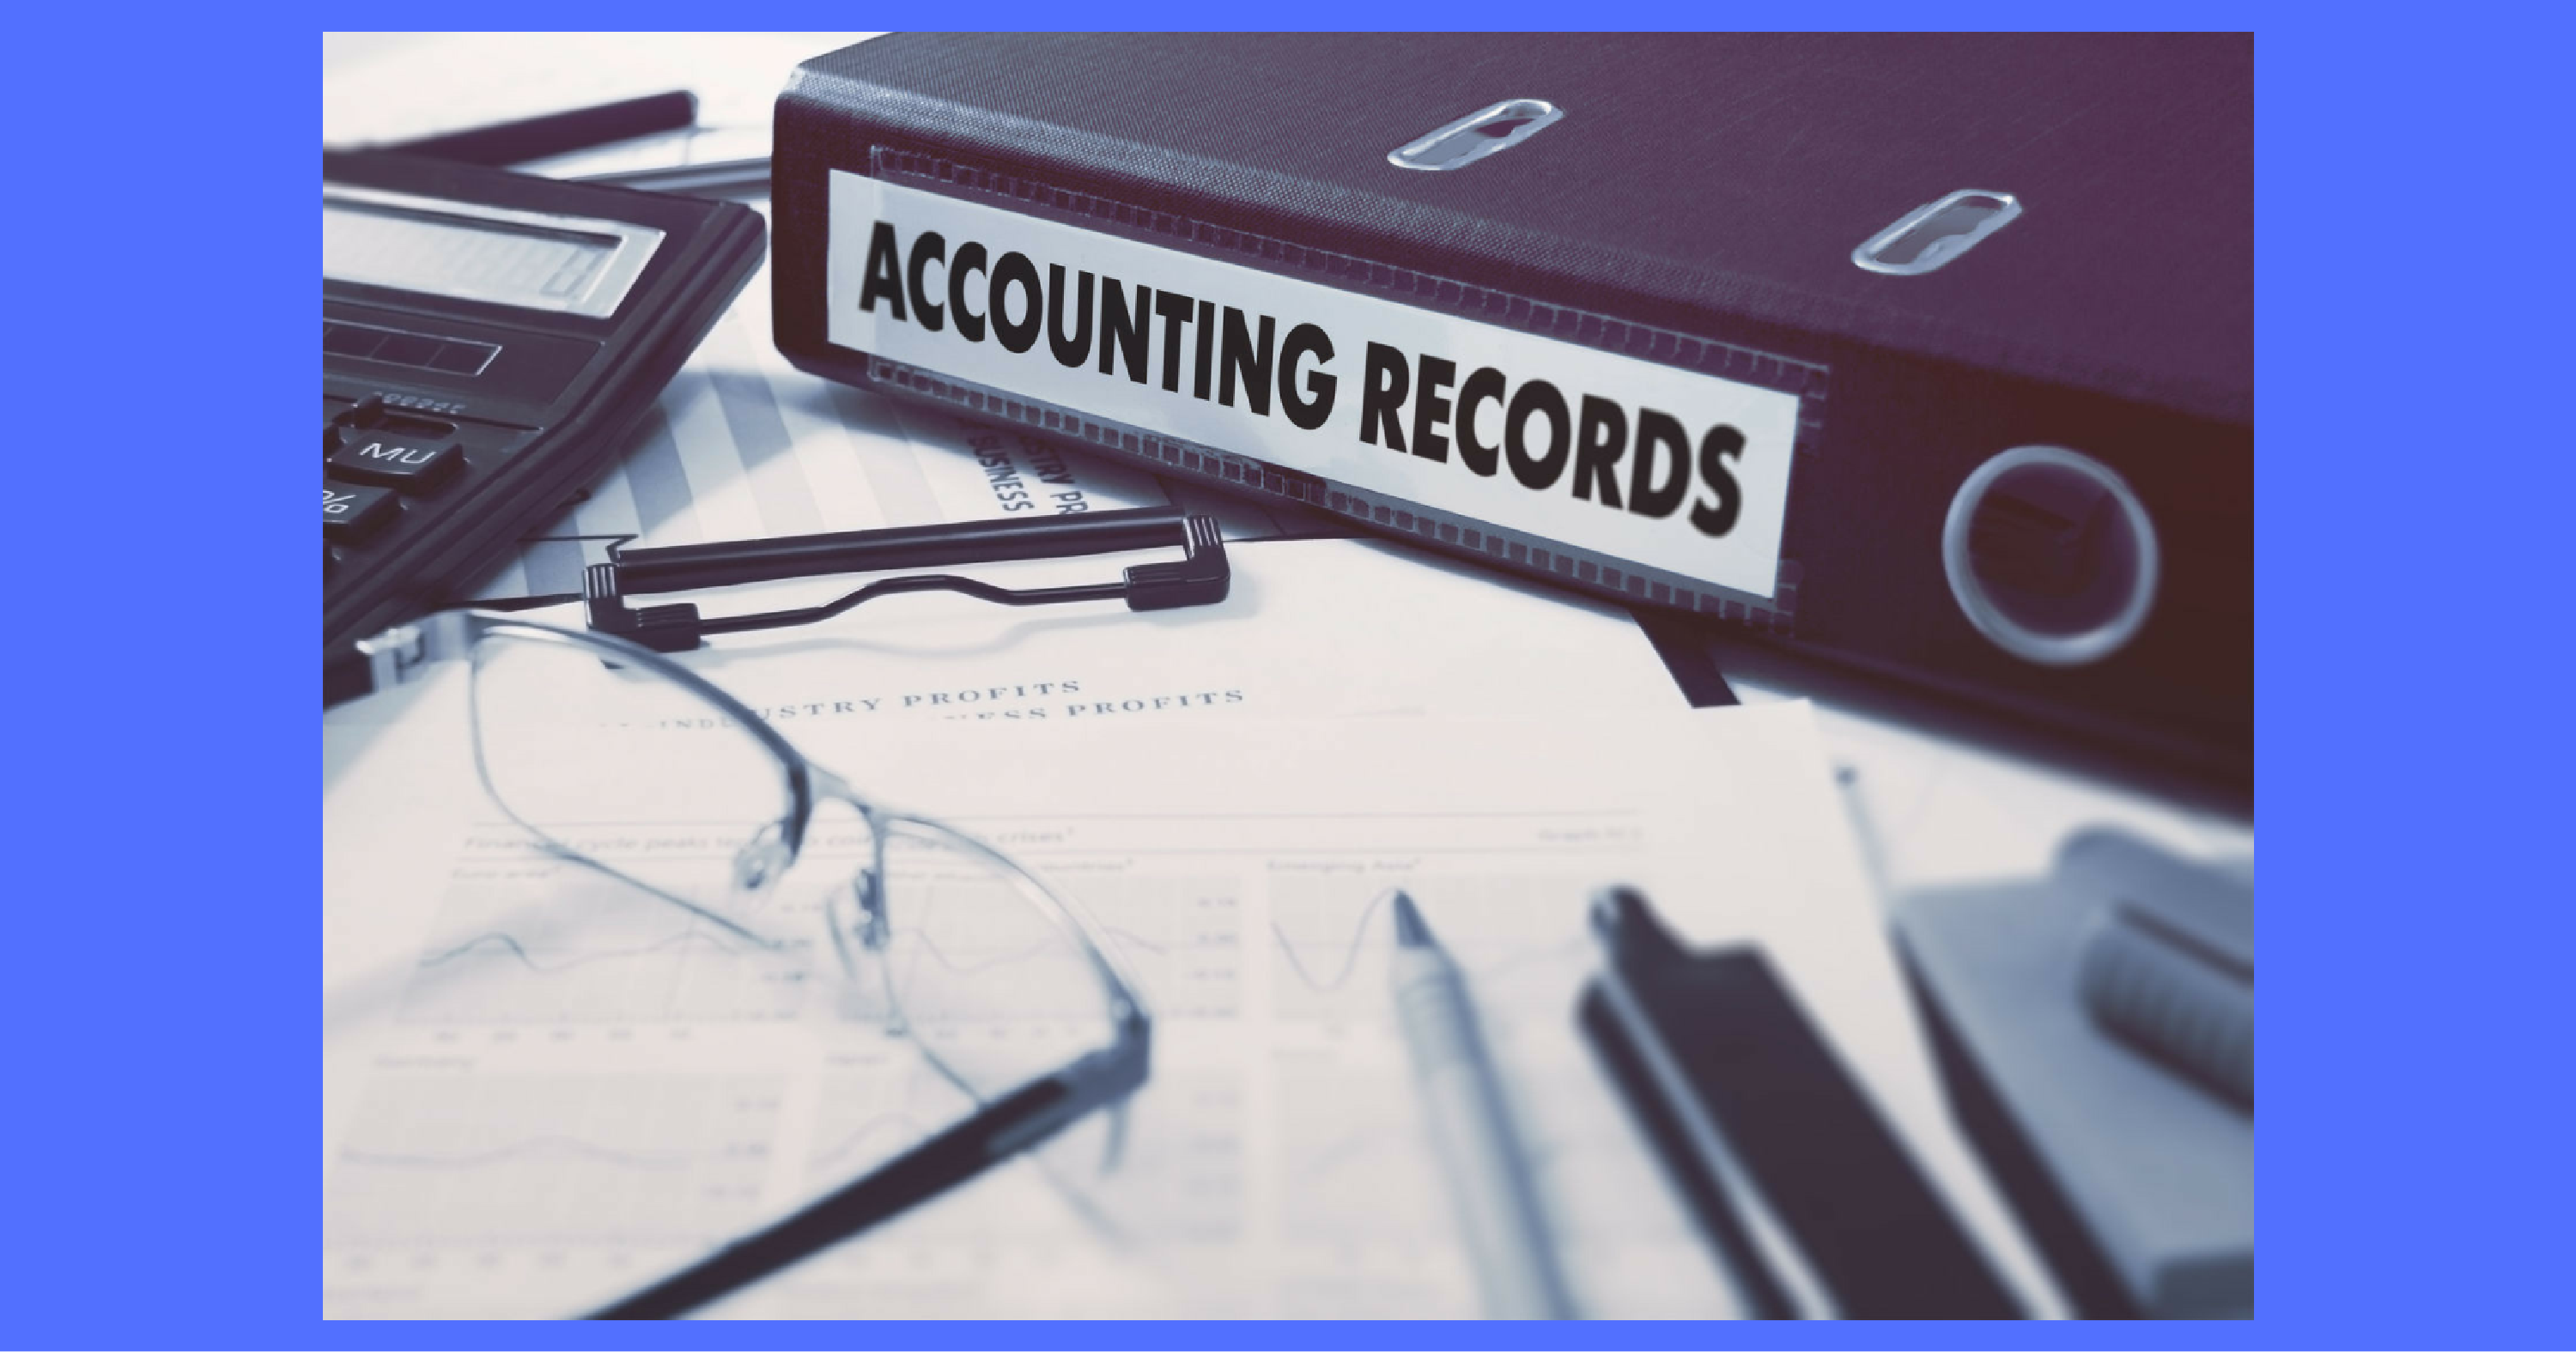 It's Time to Tackle End-of-the-Year Business Accounting